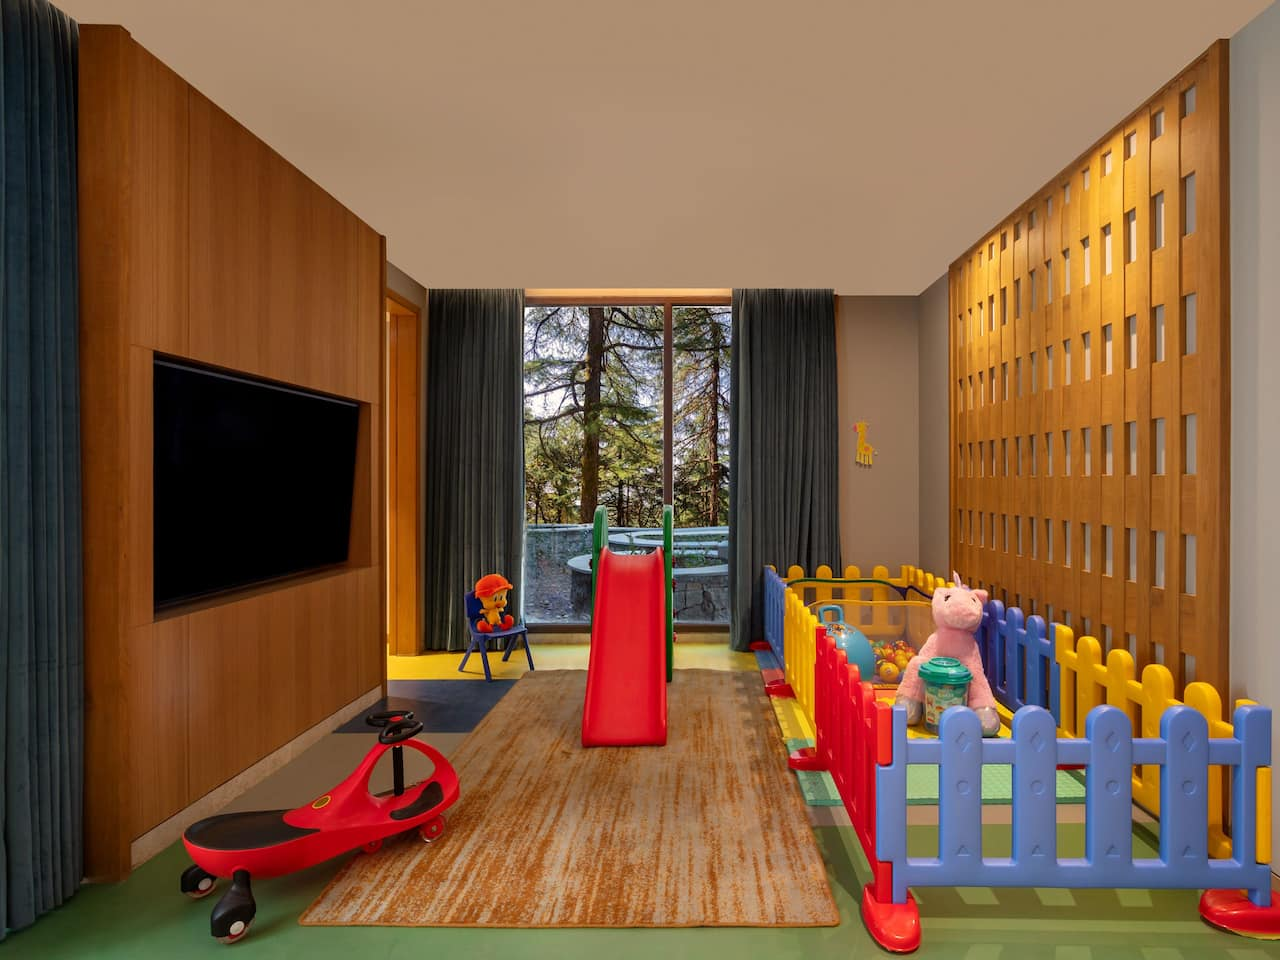 Camp Hyatt Kids Play Area - Hyatt Regency Dharamshala Resort